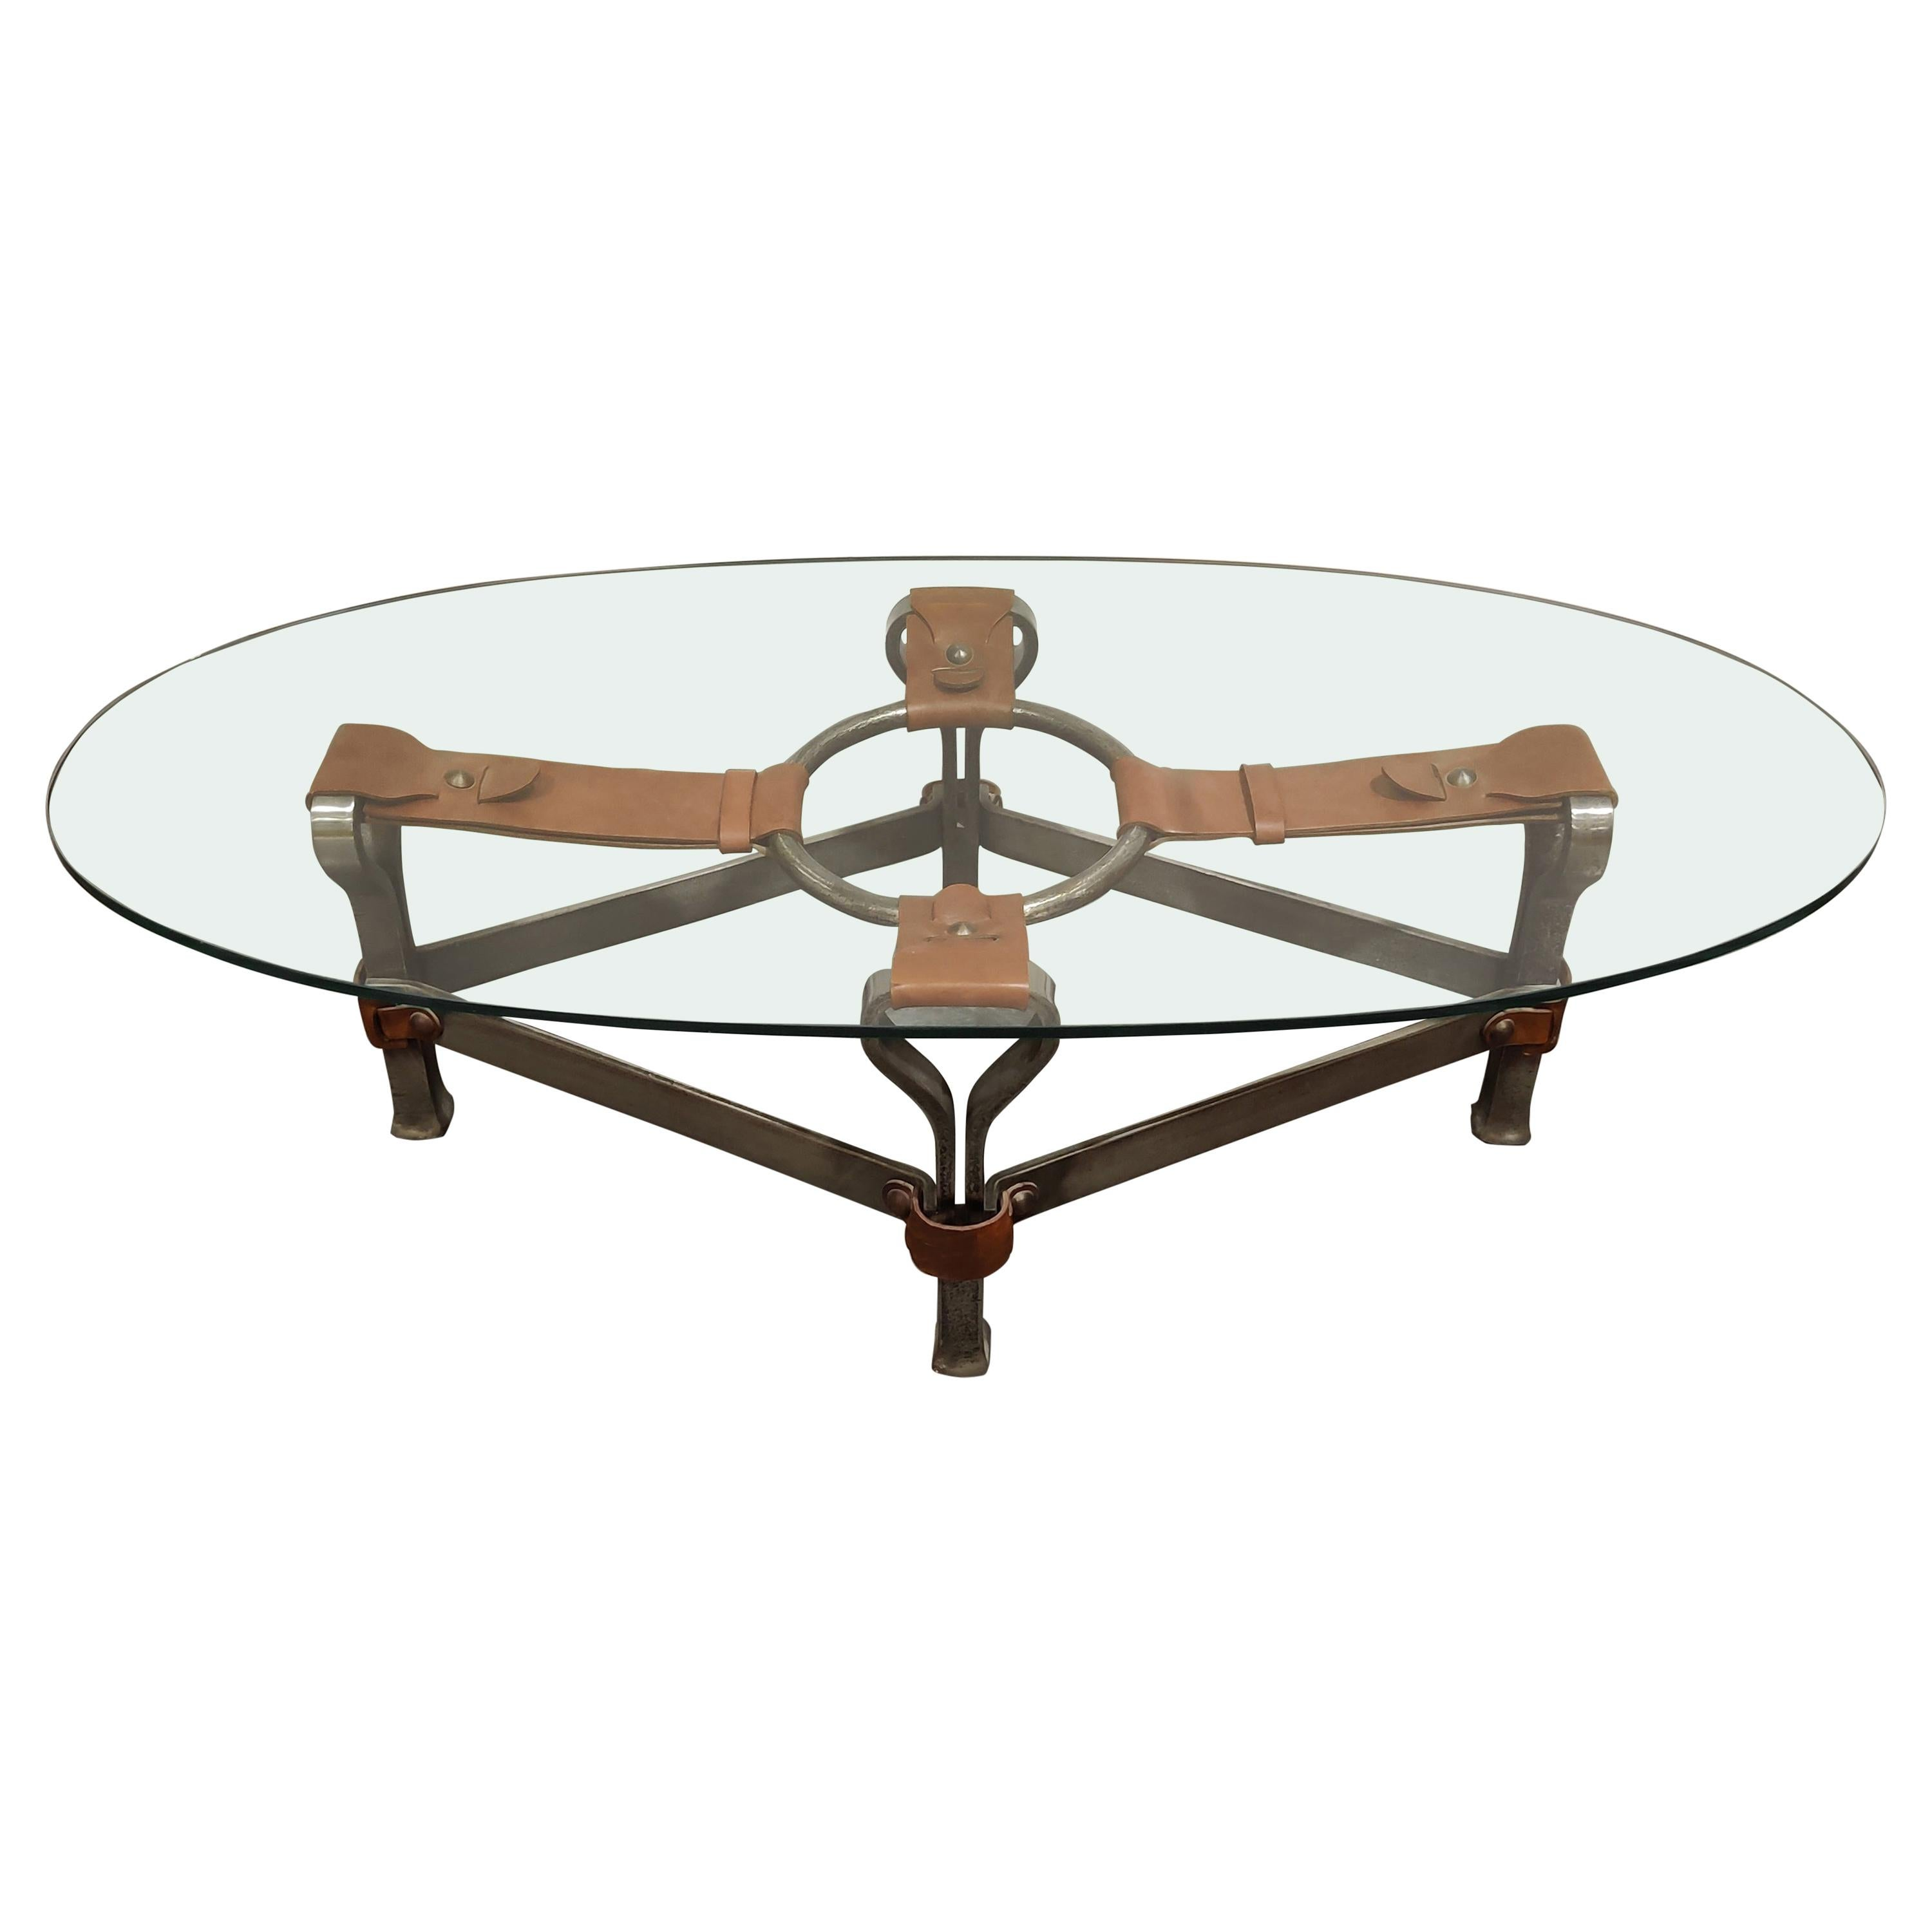 Midcentury Iron and Leather Coffee Table by Jacques Adnet, 1960s